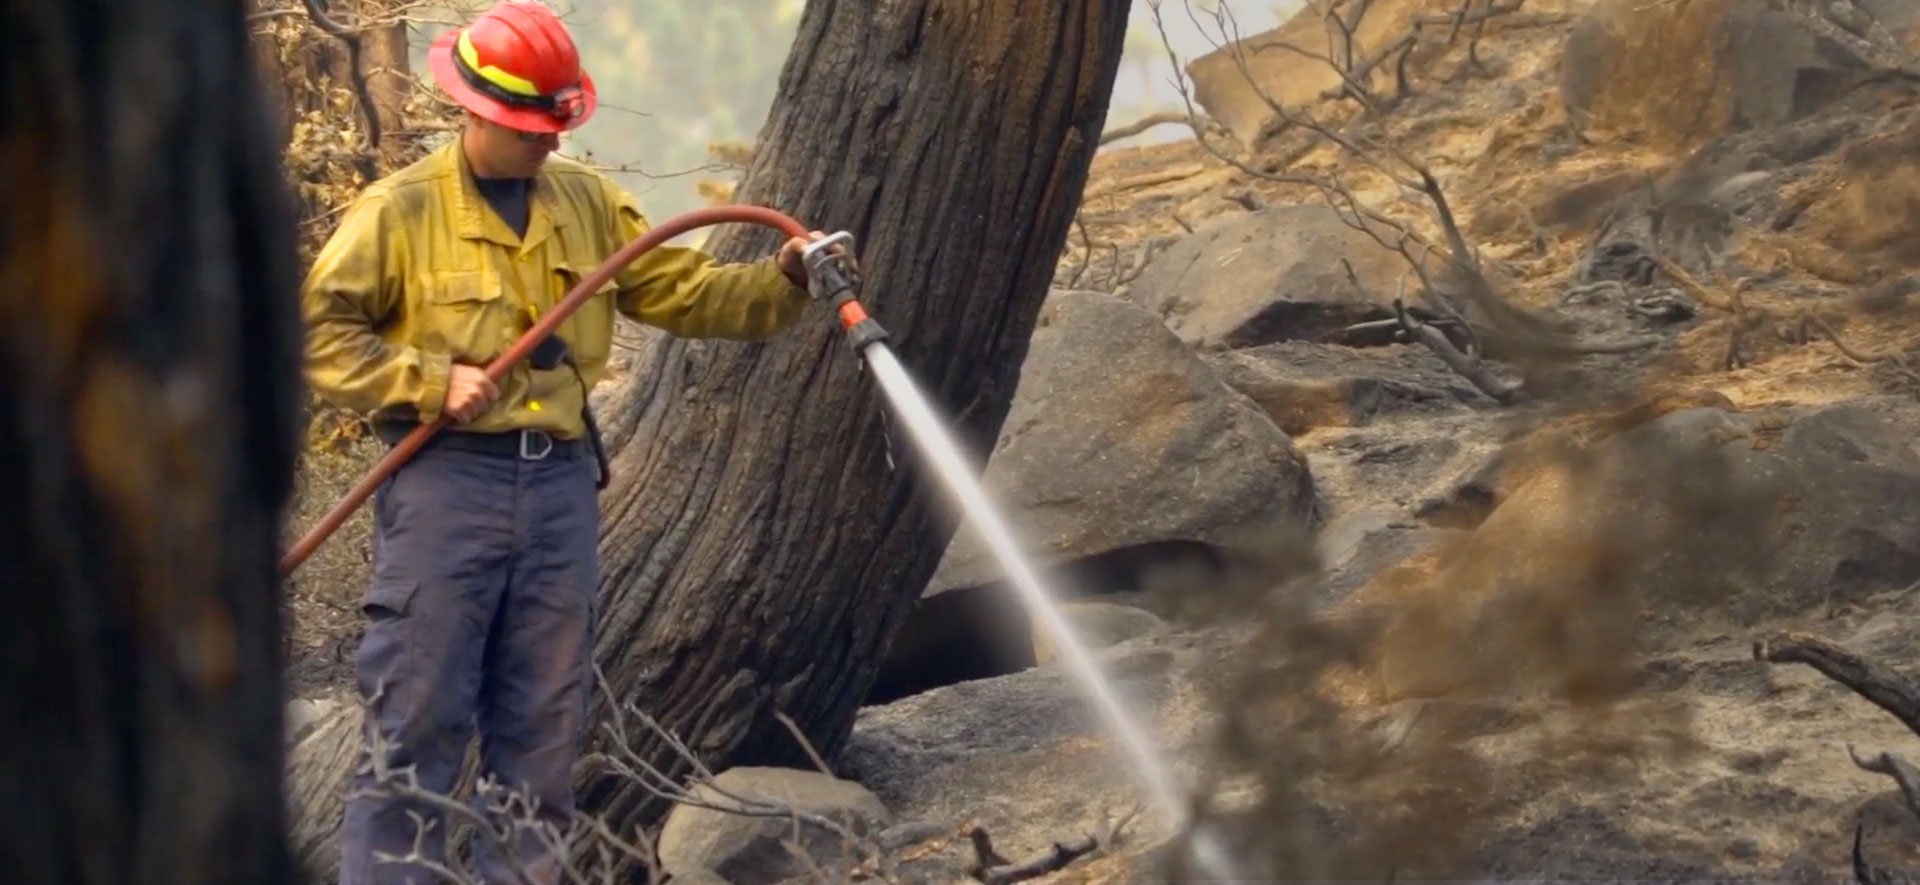 The Gift of Compassion After the Caldor Fire